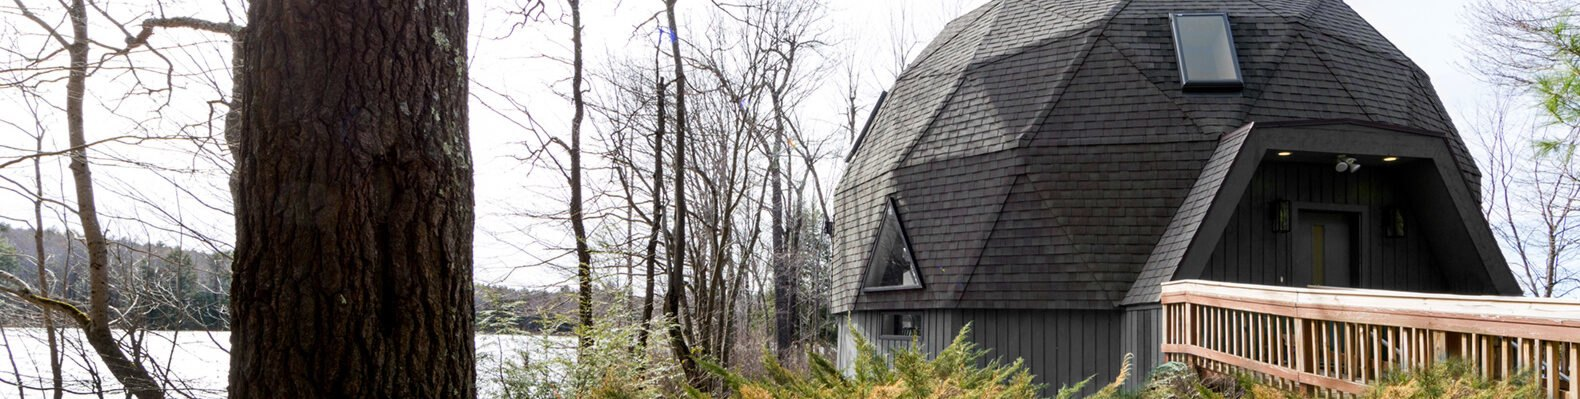 dark gray geodesic home by a lake